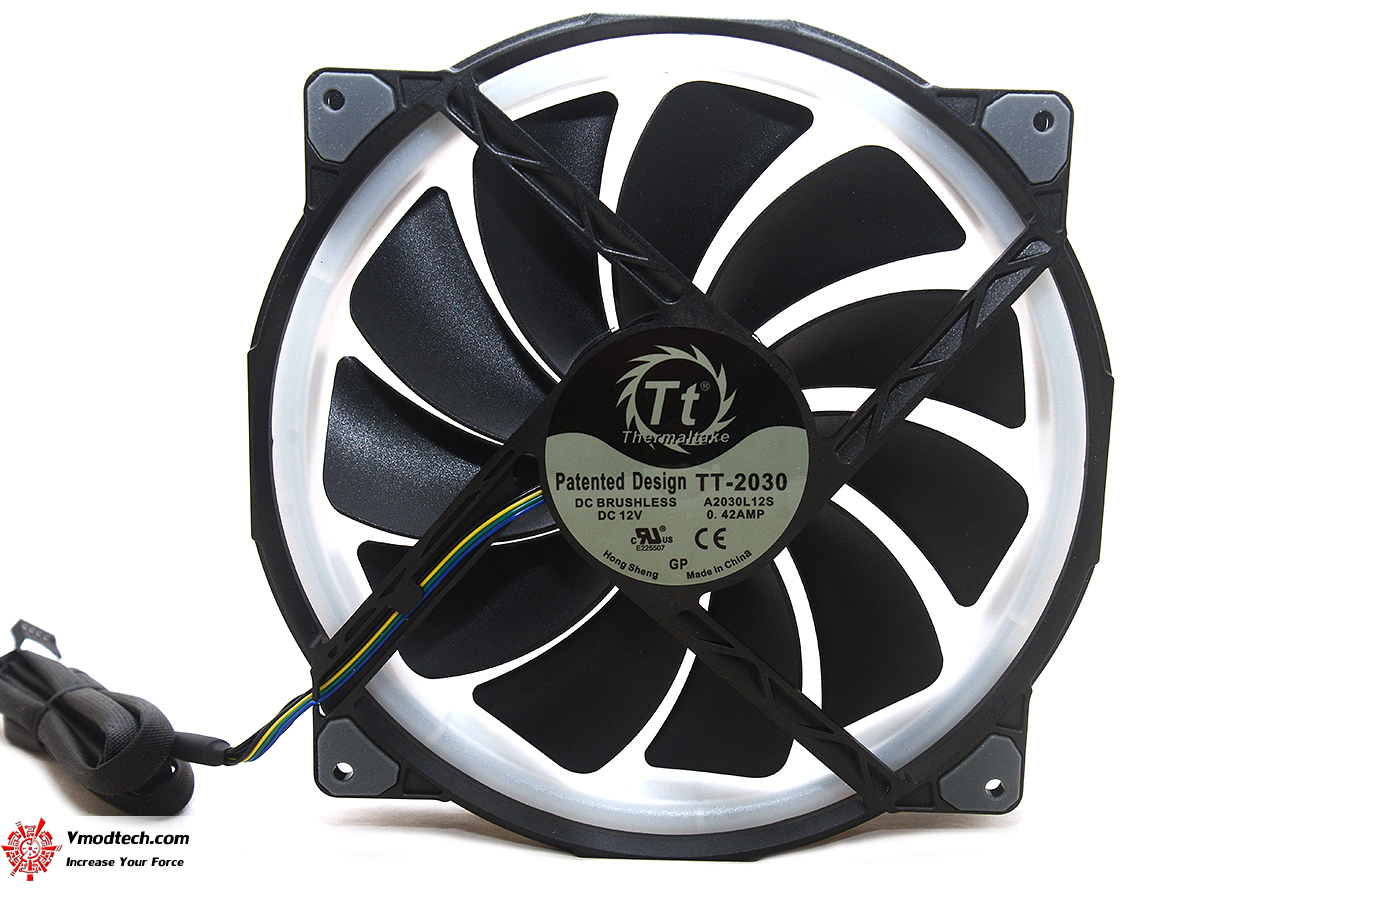 dsc 6593 Thermaltake Riing Plus 20 RGB Case Fan TT Premium Edition (Single Fan Pack w/o Controller) Review